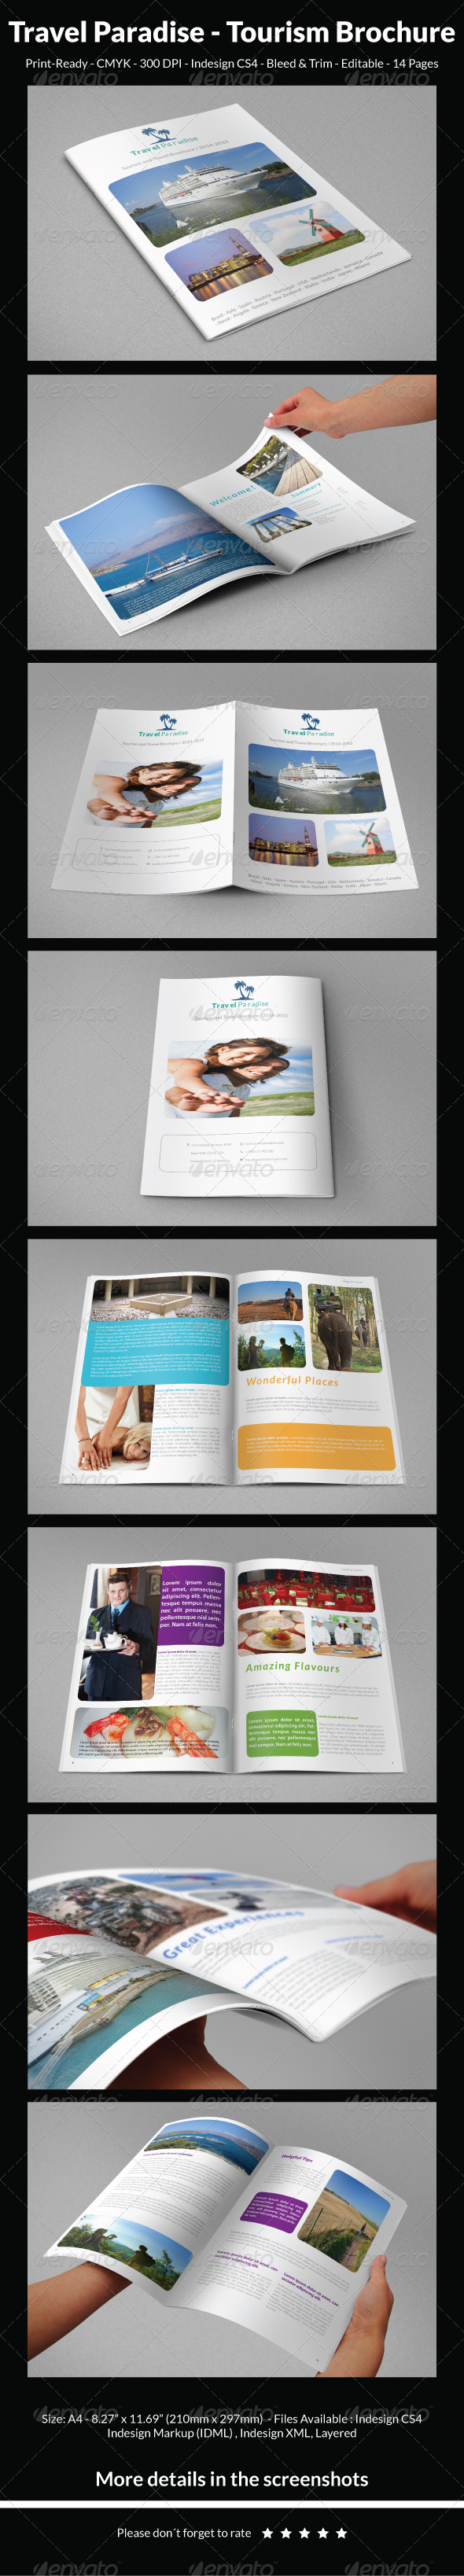 GraphicRiver Travel Paradise Tourism Brochure 5313071